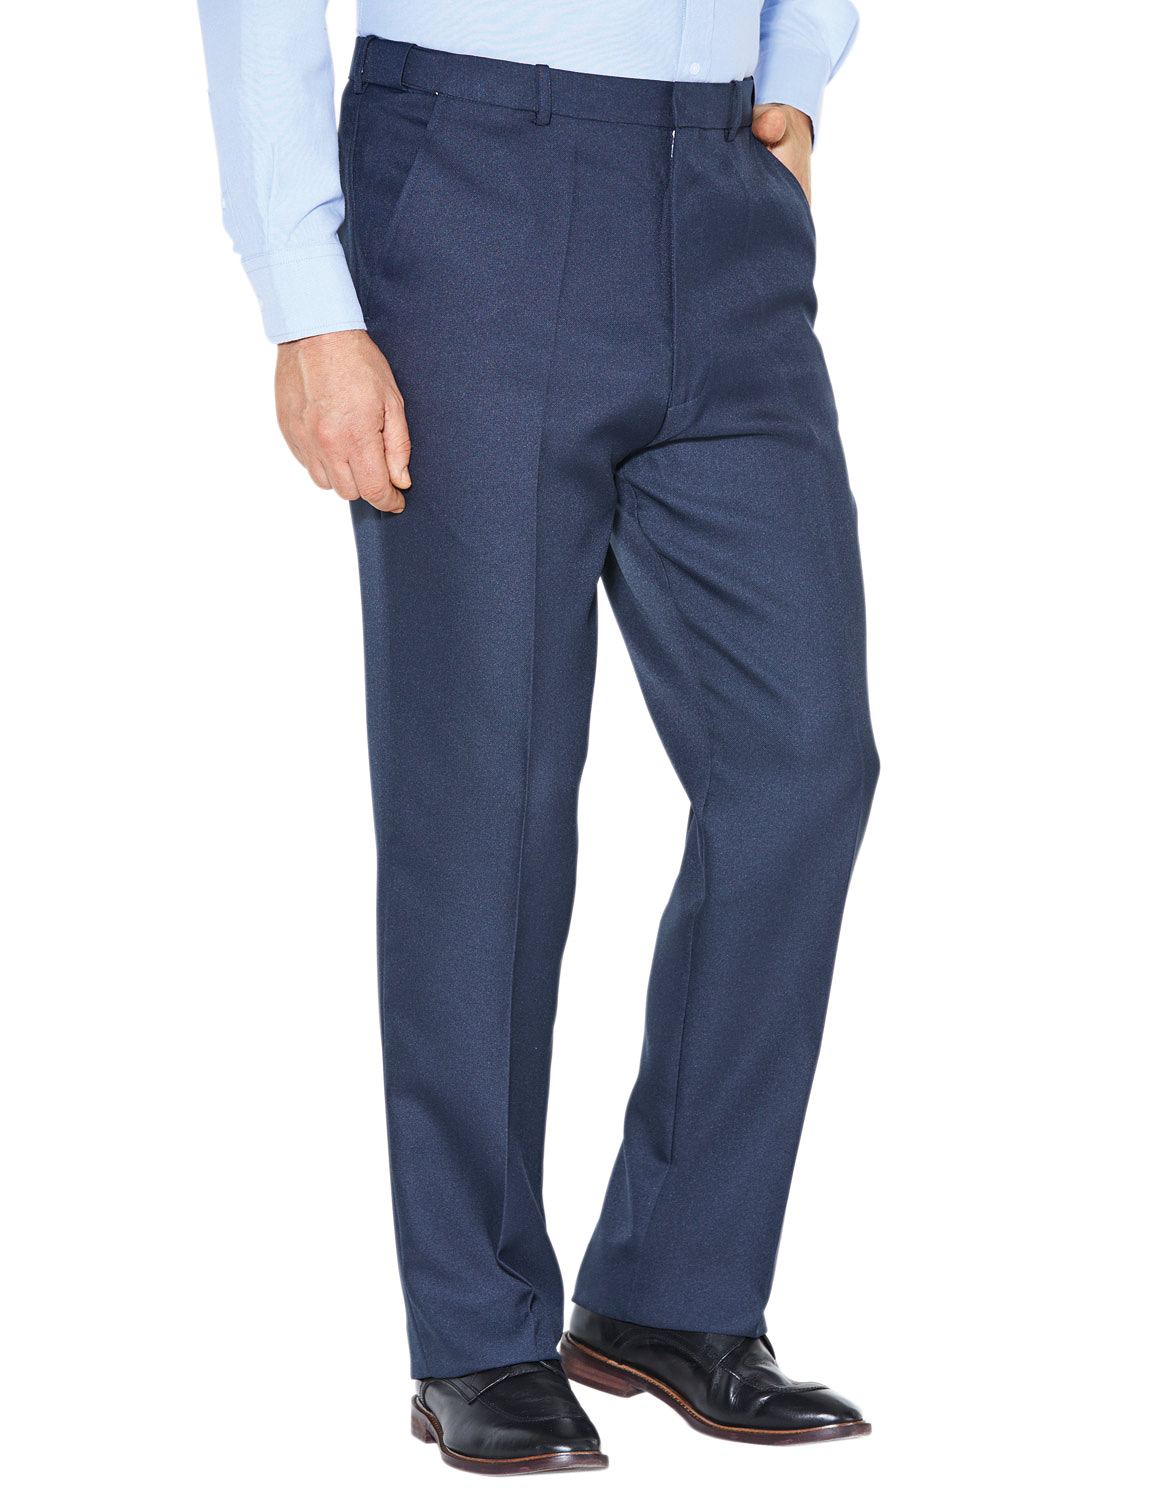 The relaxed fit of the seat and thighs make these a comfortable yet durable pair of work pants. oz. ringspun cotton twill. Available in a variety of sizes.